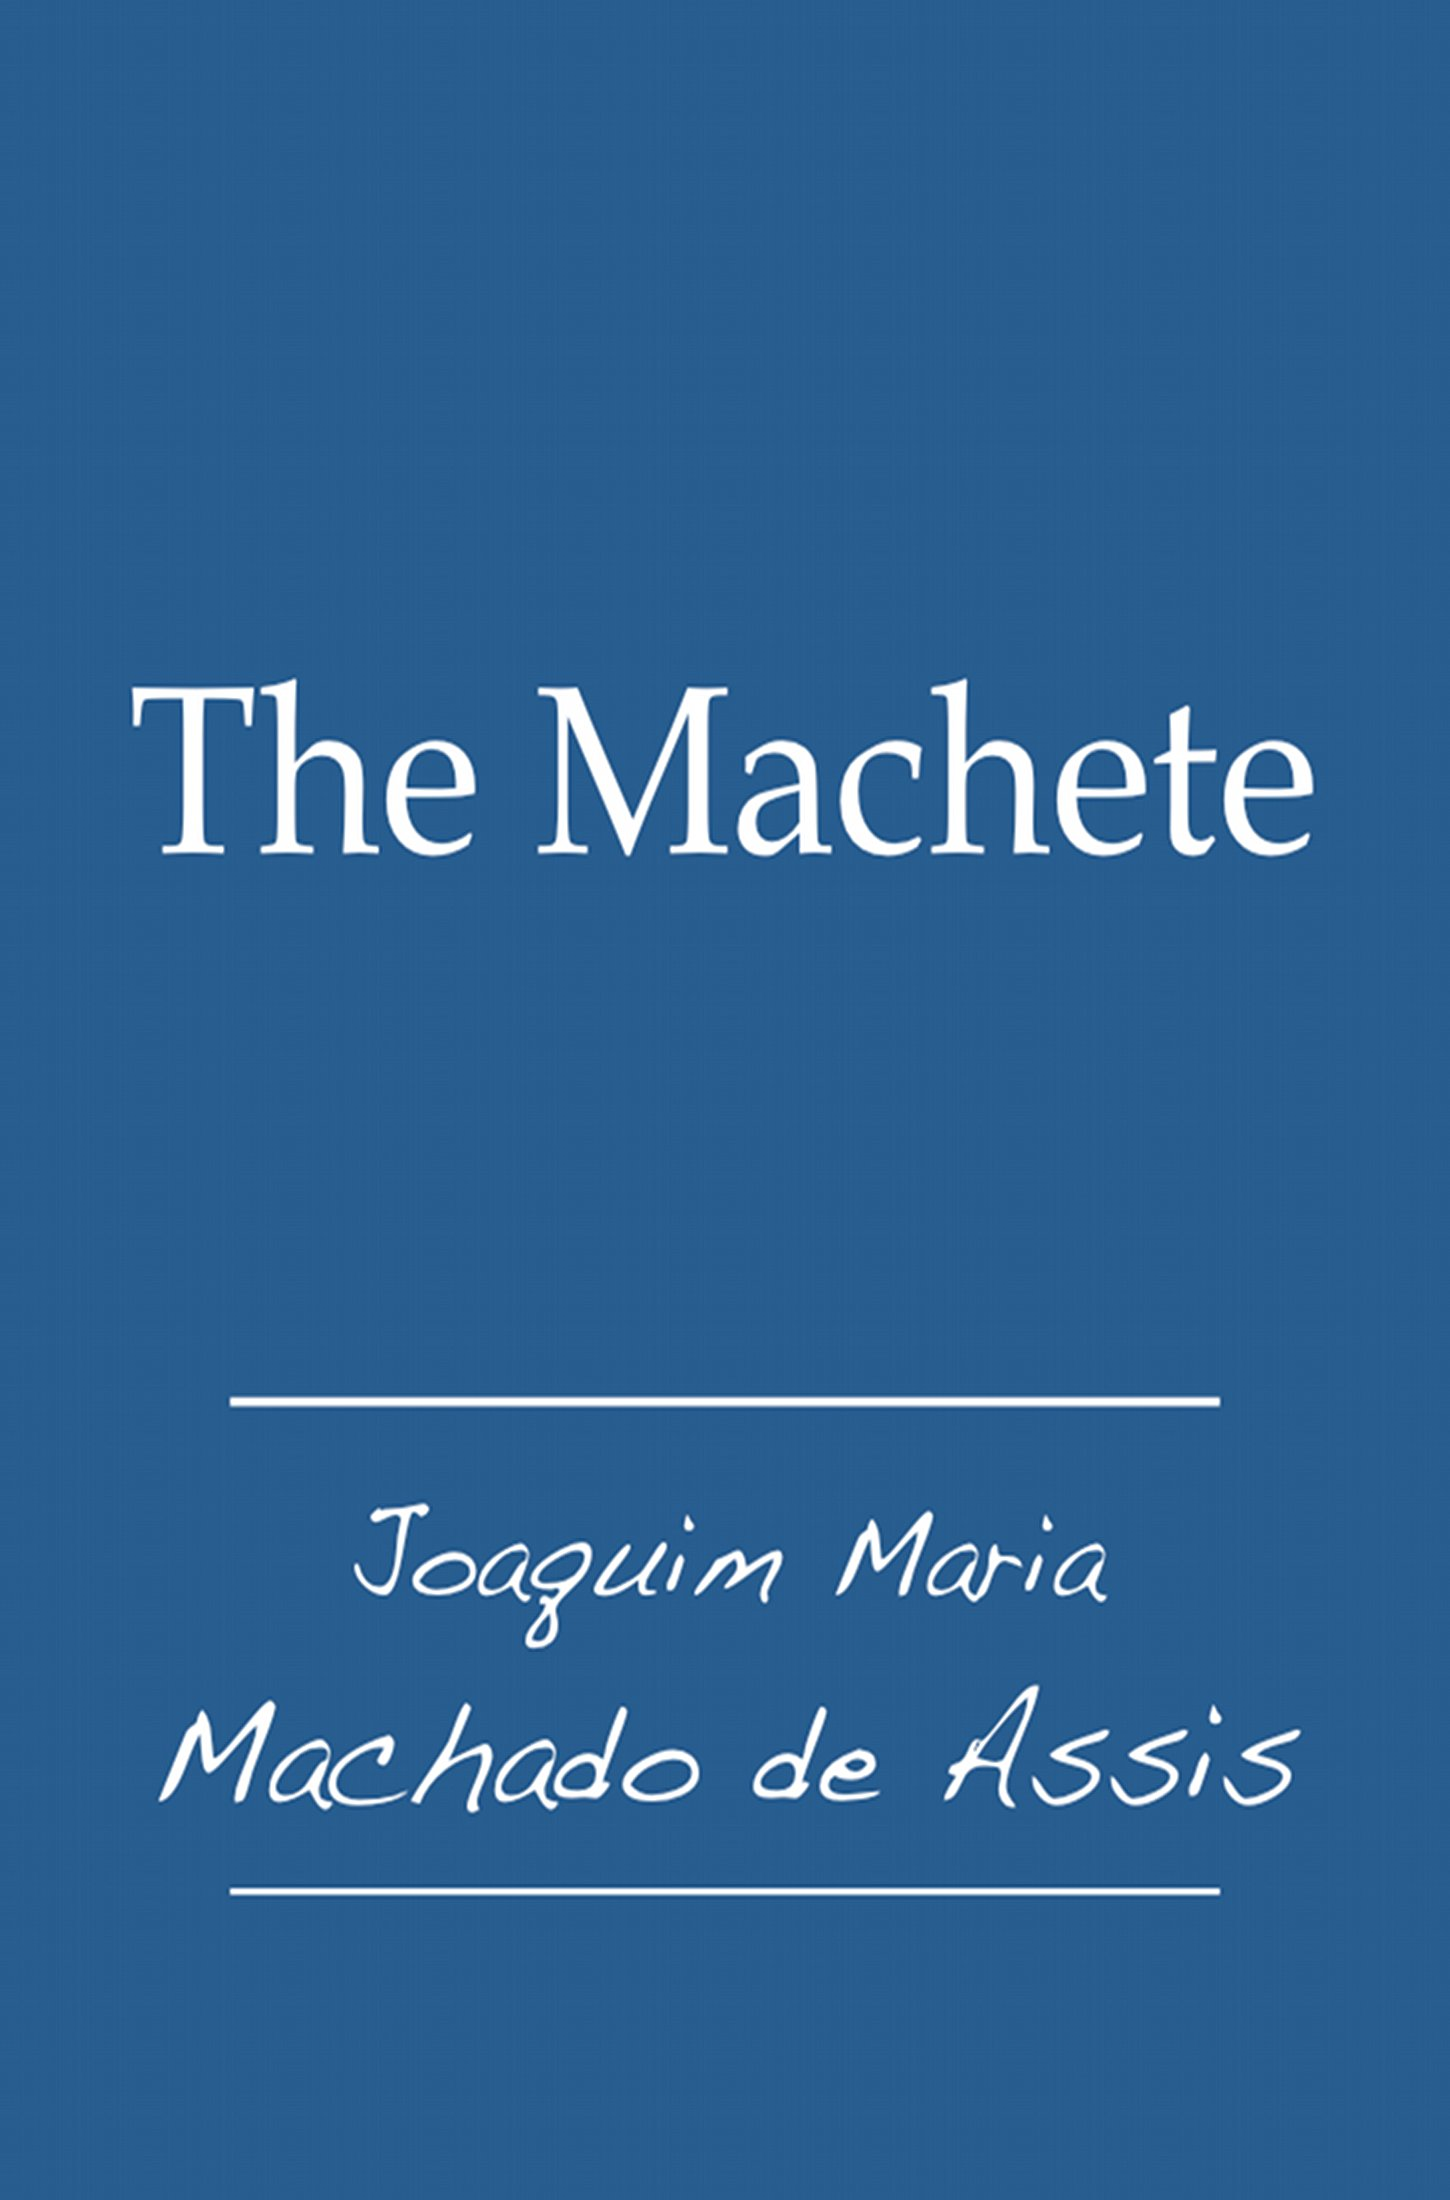 The Machete